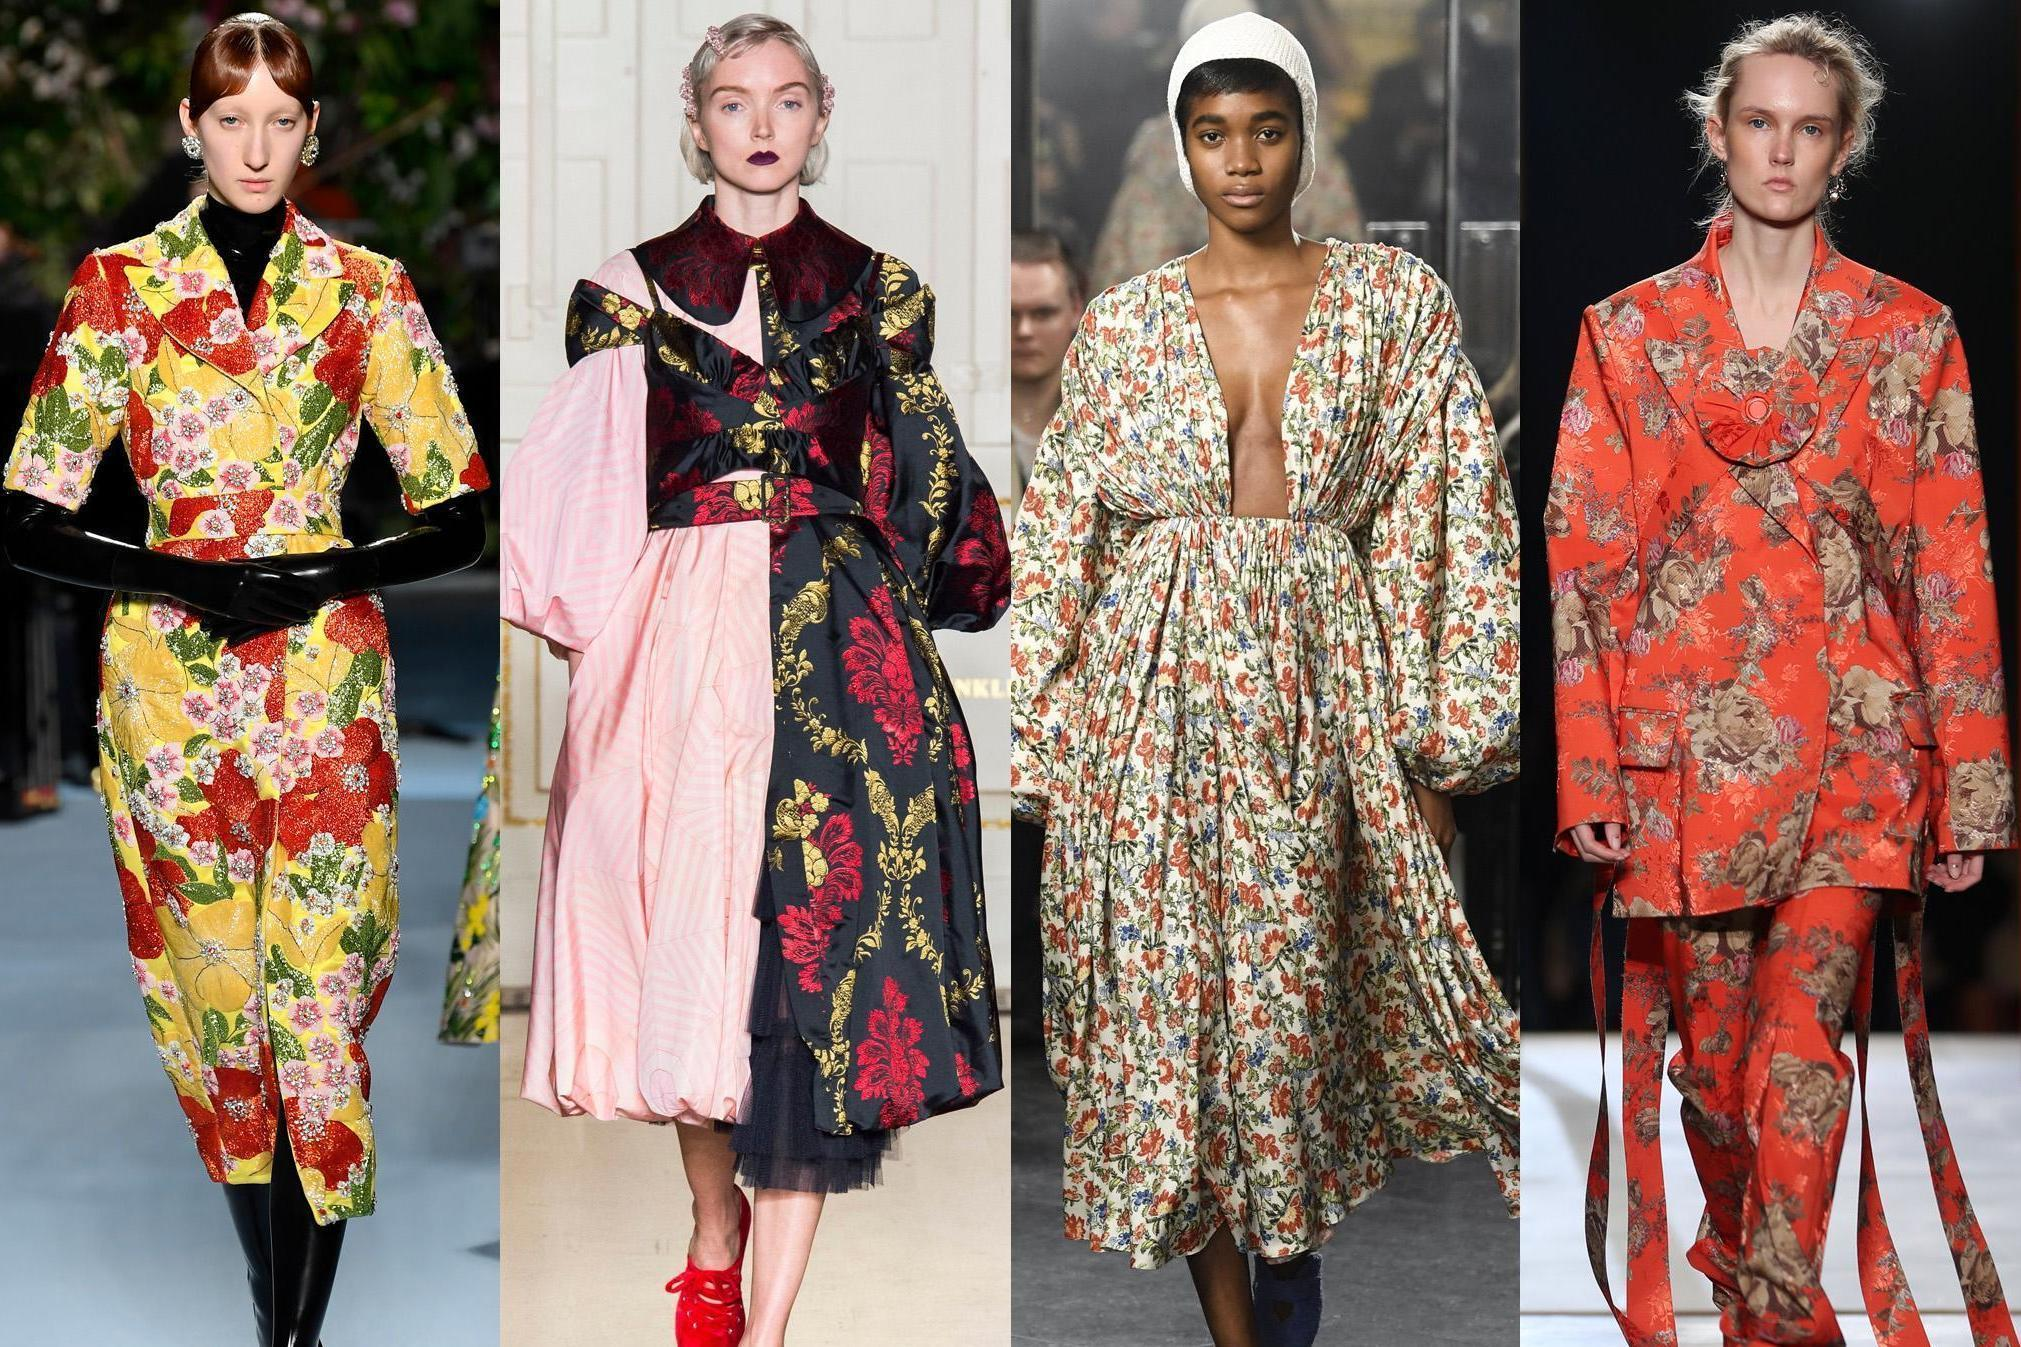 London Fashion Week: The five major trends you need to know